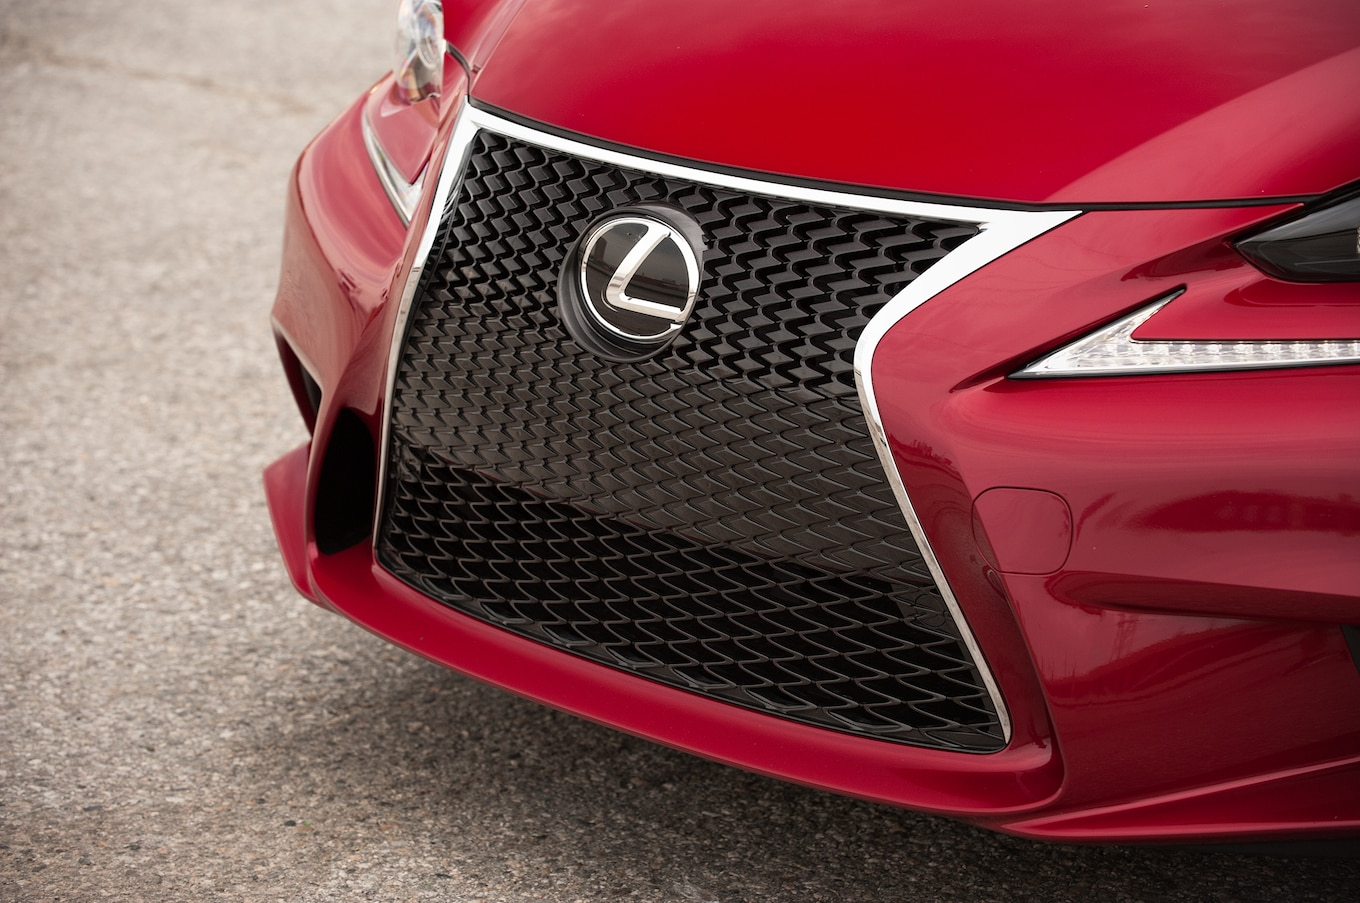 Finally found something nice to say about the Lexus spindle grille